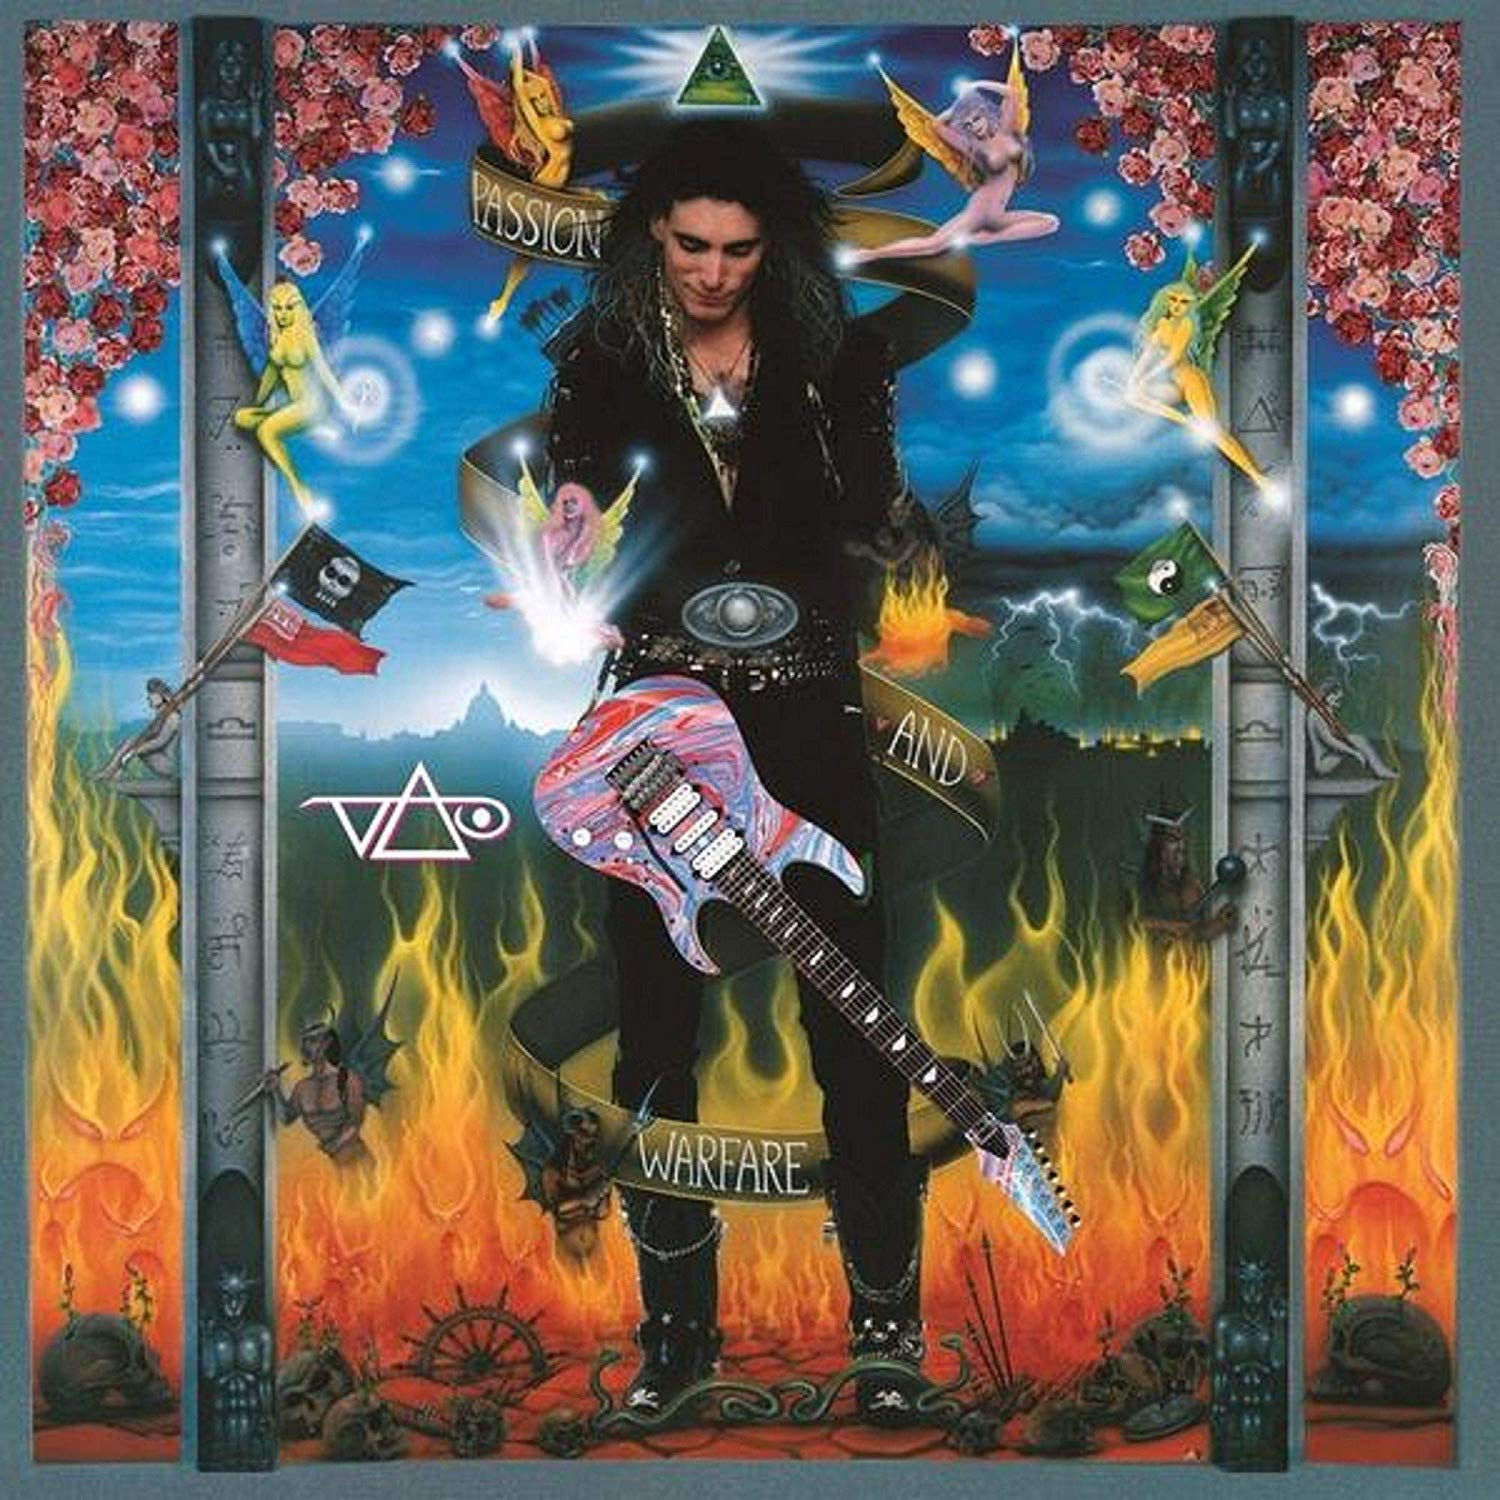 Steve Vai - Passion And Warfare Translucent Blue Audiophile Bonus Tracks